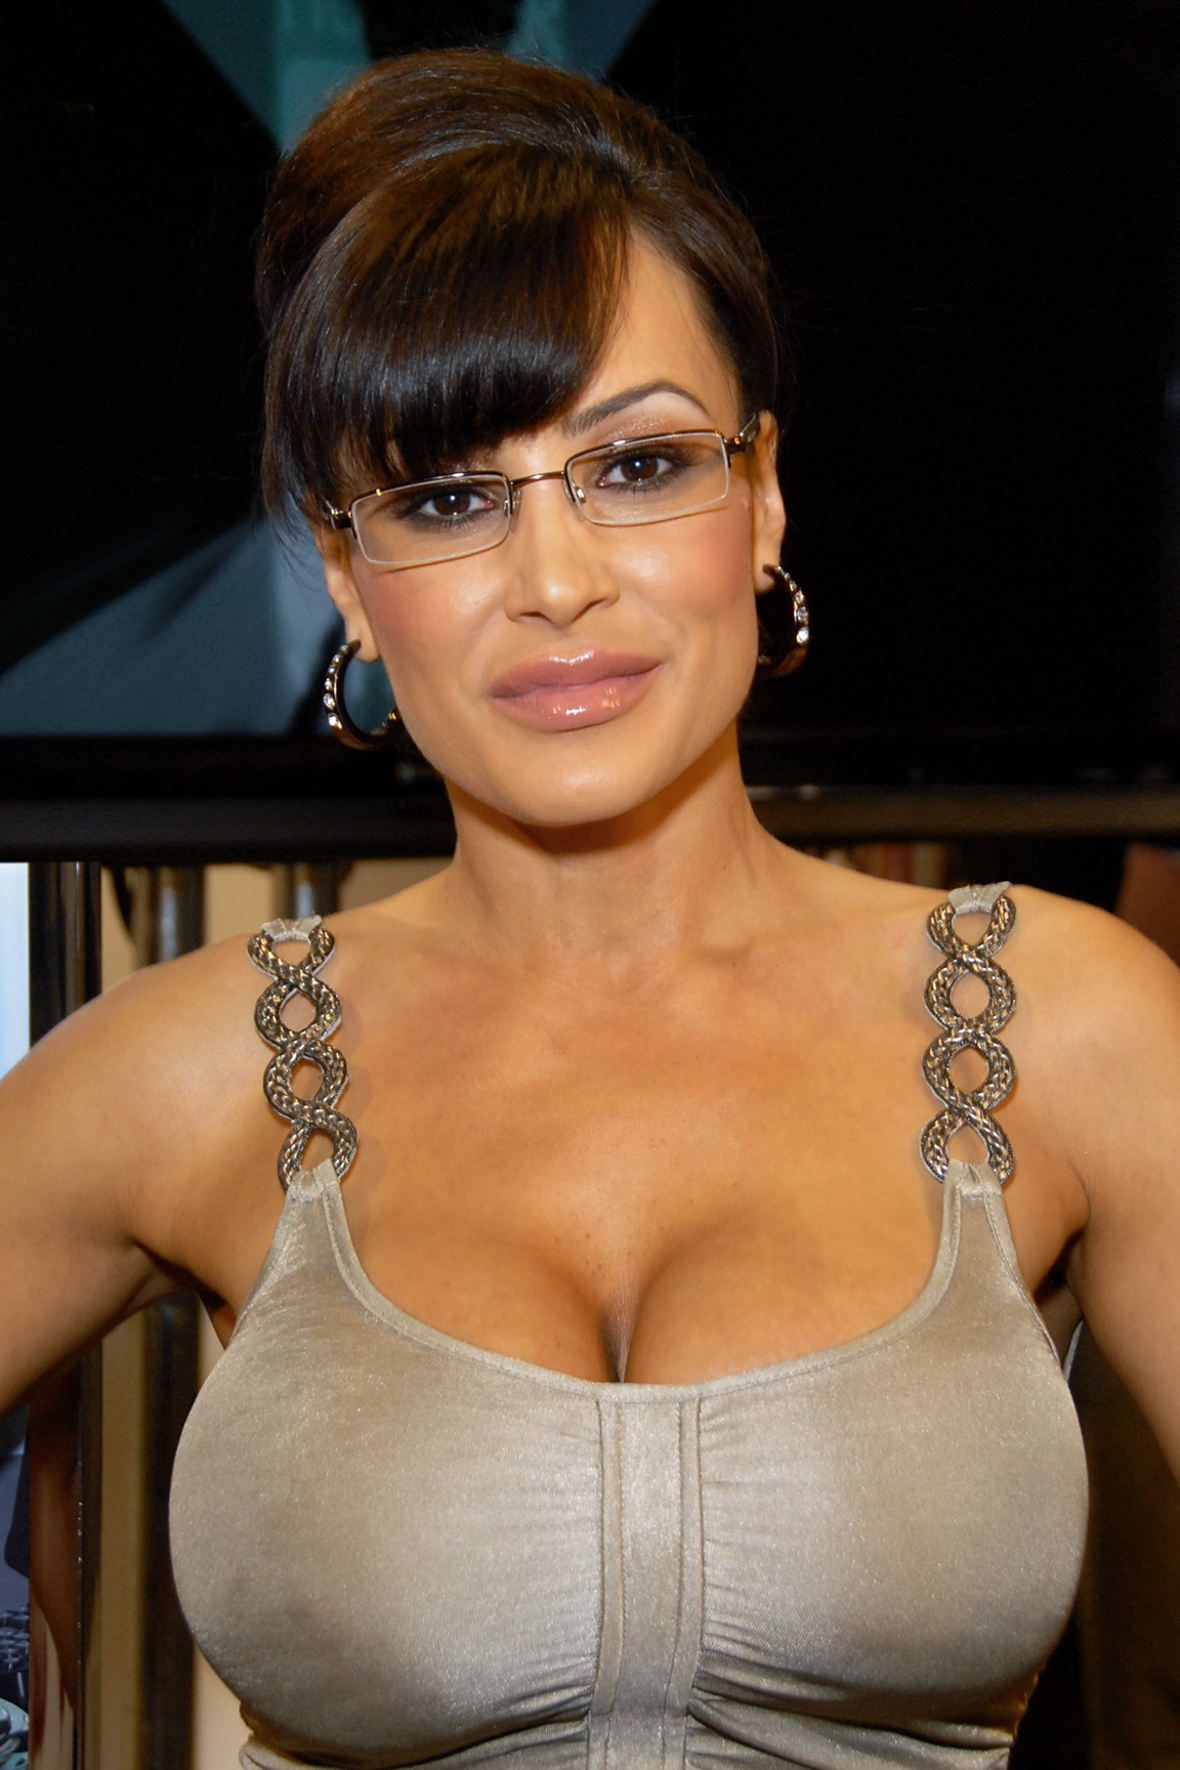 Renna Pornstar Great lisa ann pornstar large photo | lisa ann | pinterest | lisa and ann